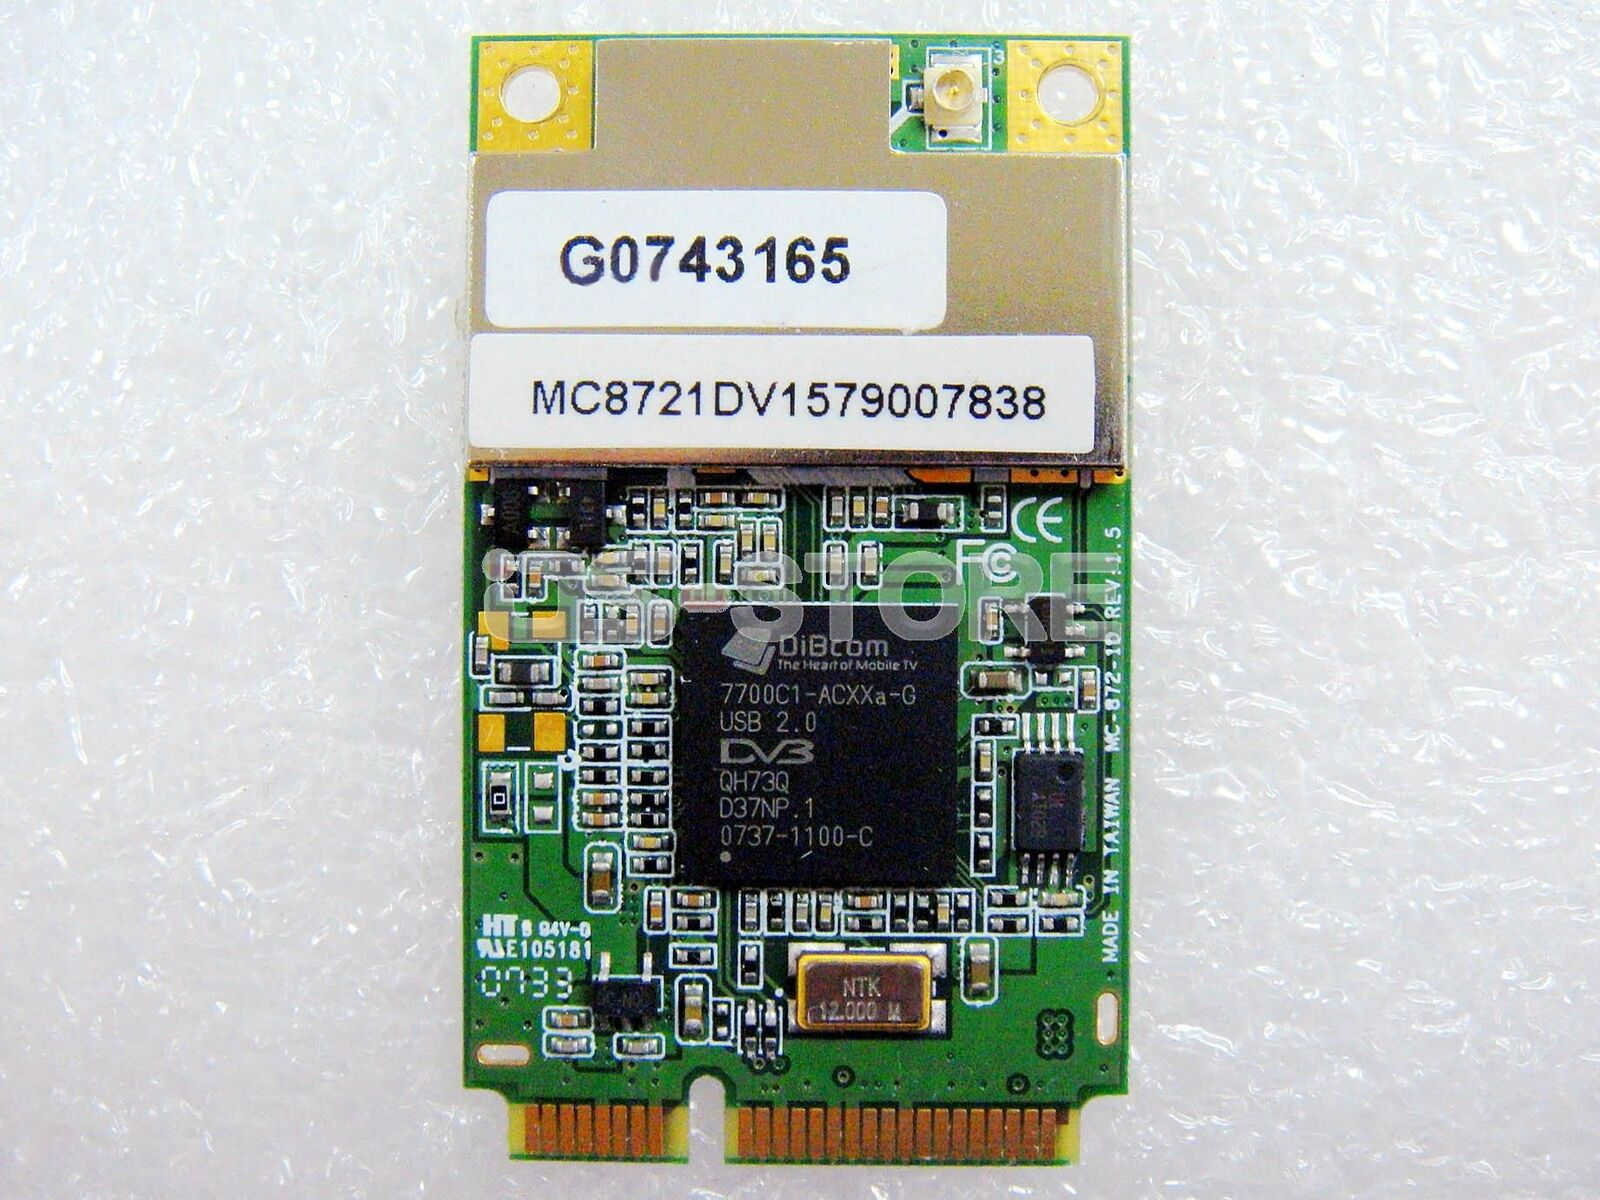 YUAN DIB7700 DTV Tuner Windows 8 X64 Driver Download